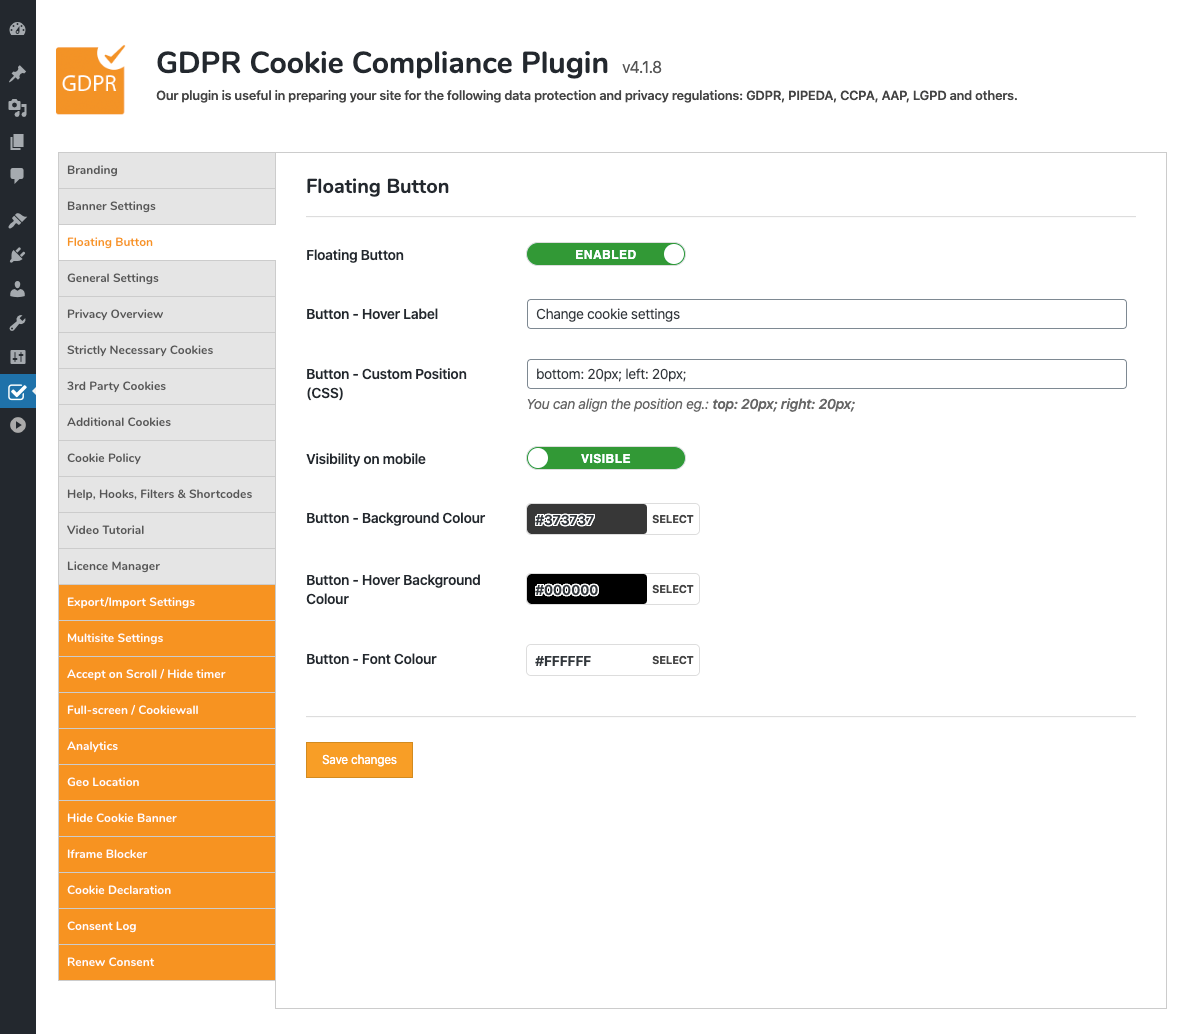 GDPR Cookie Compliance - Admin - Floating Button